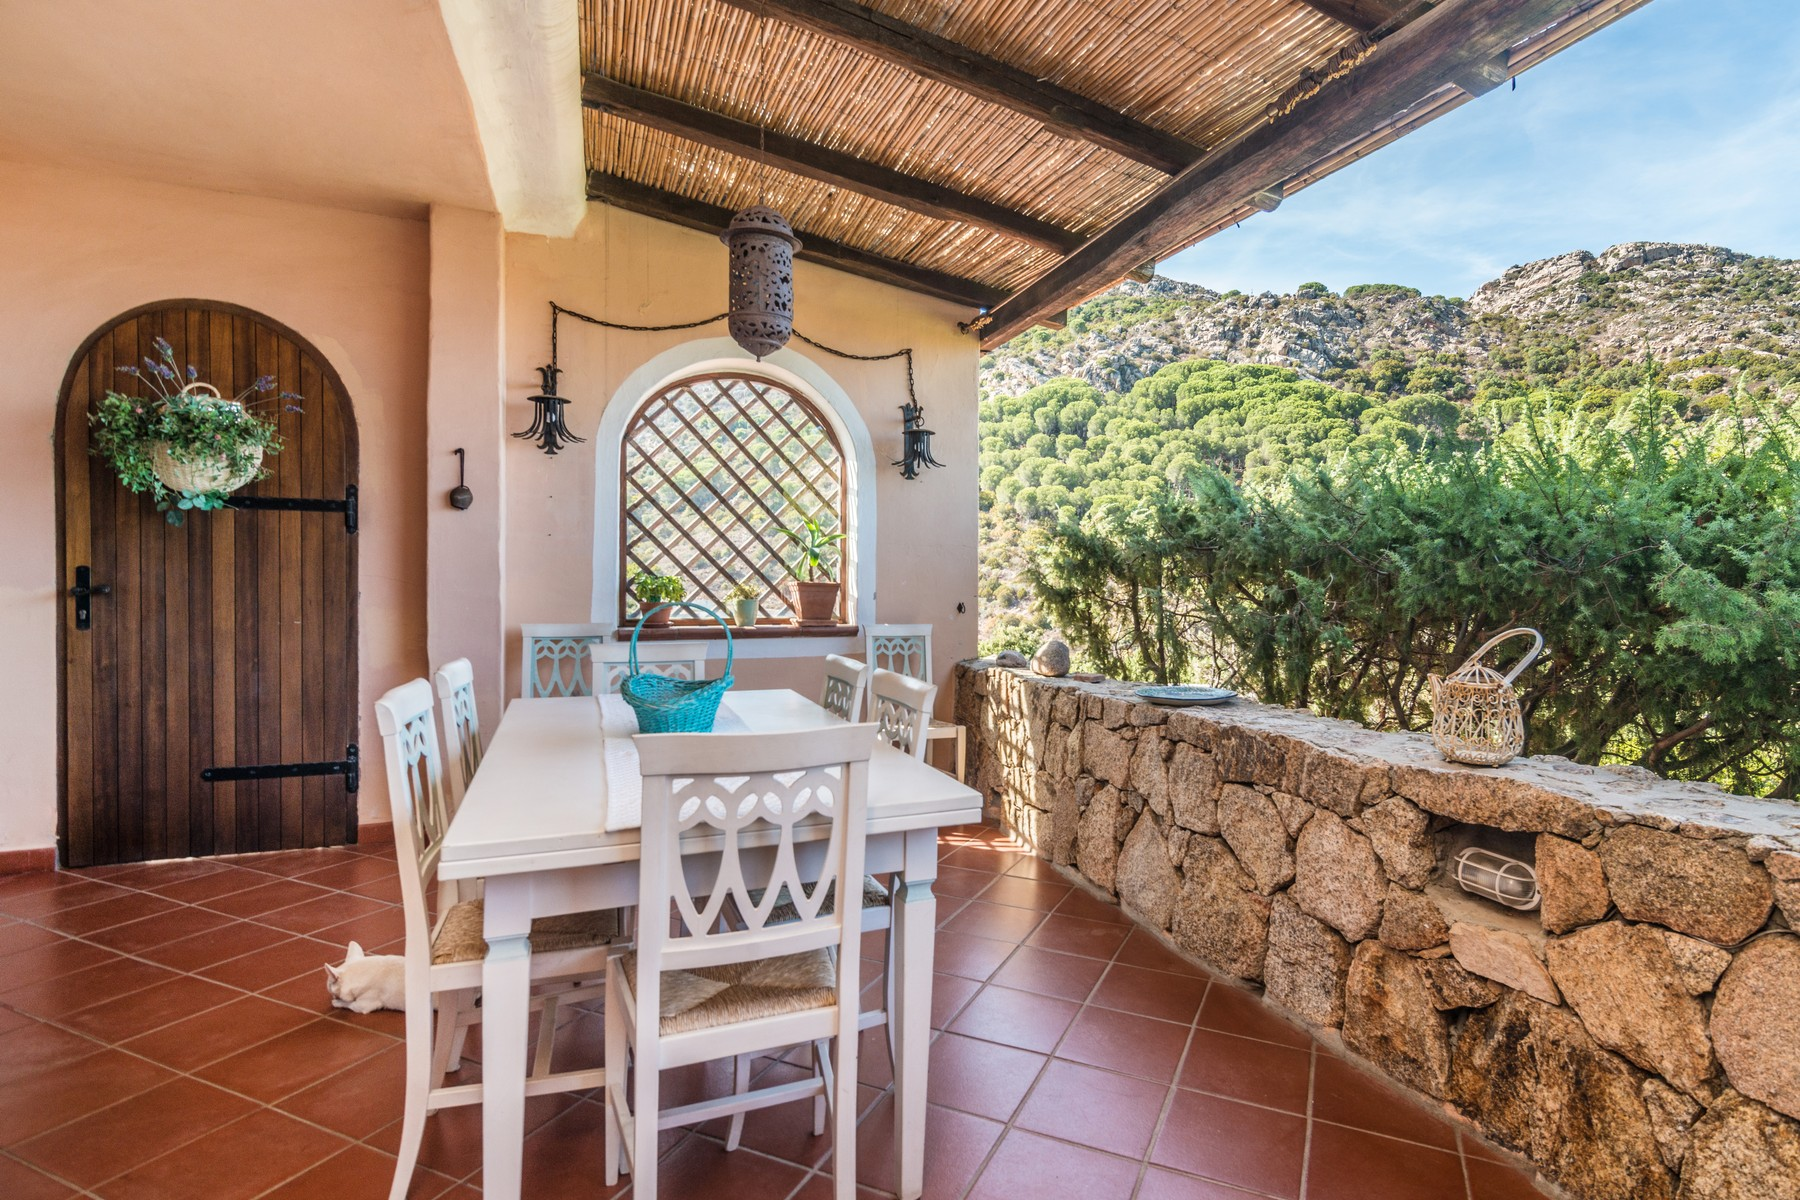 Additional photo for property listing at Beautiful apartment in residence with sea view Porto Cervo Porto Cervo, Olbia Tempio 07020 Italia